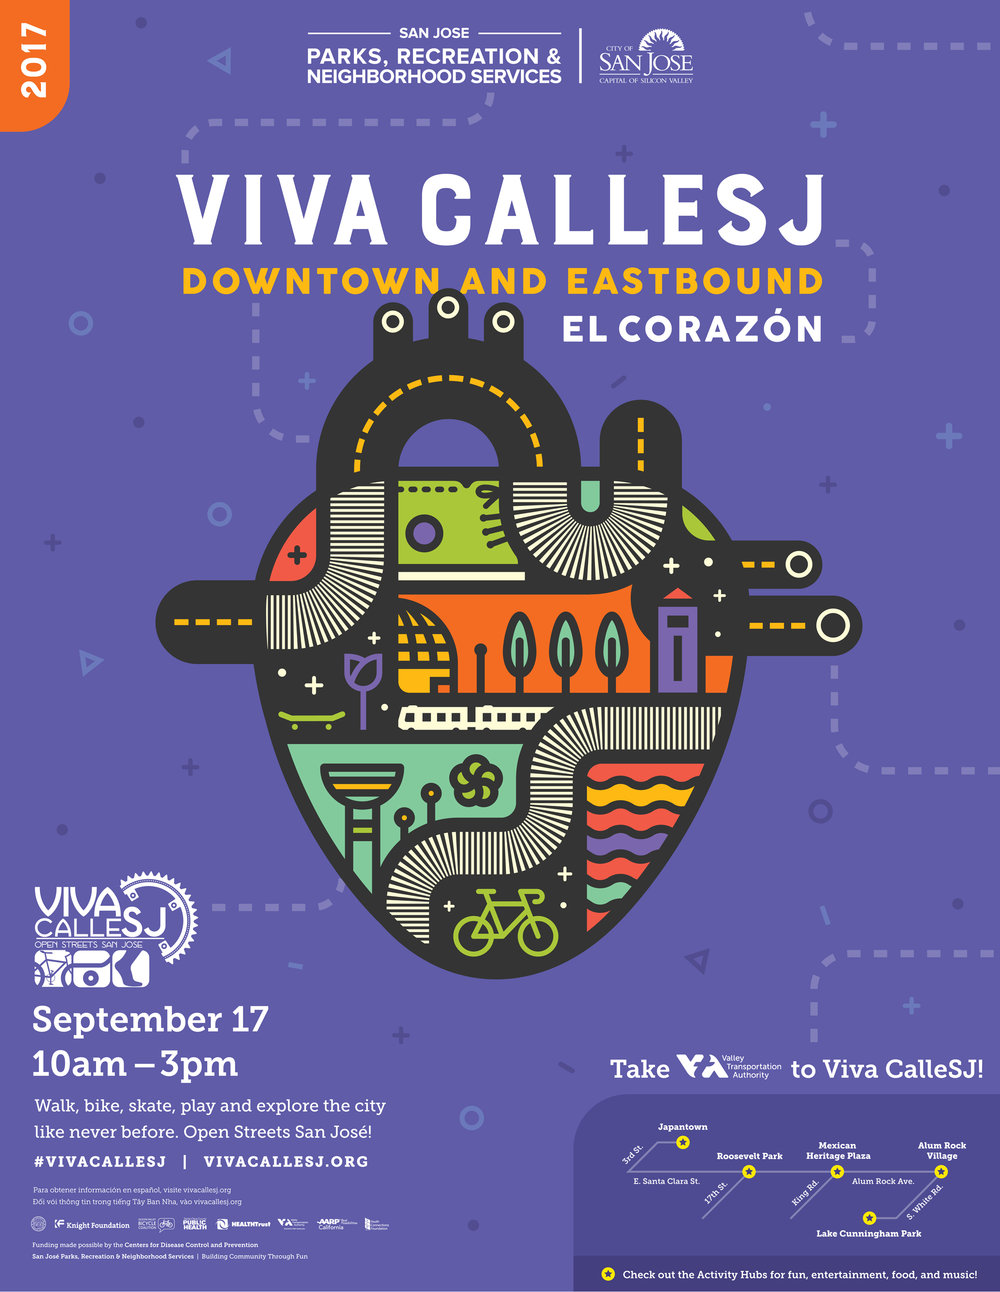 Viva Calle! - I will be popping up with my good pal Laura of Le Animale near Japantown. We will be stationed near Classic Loot. Look for a blue tent with gold flags!